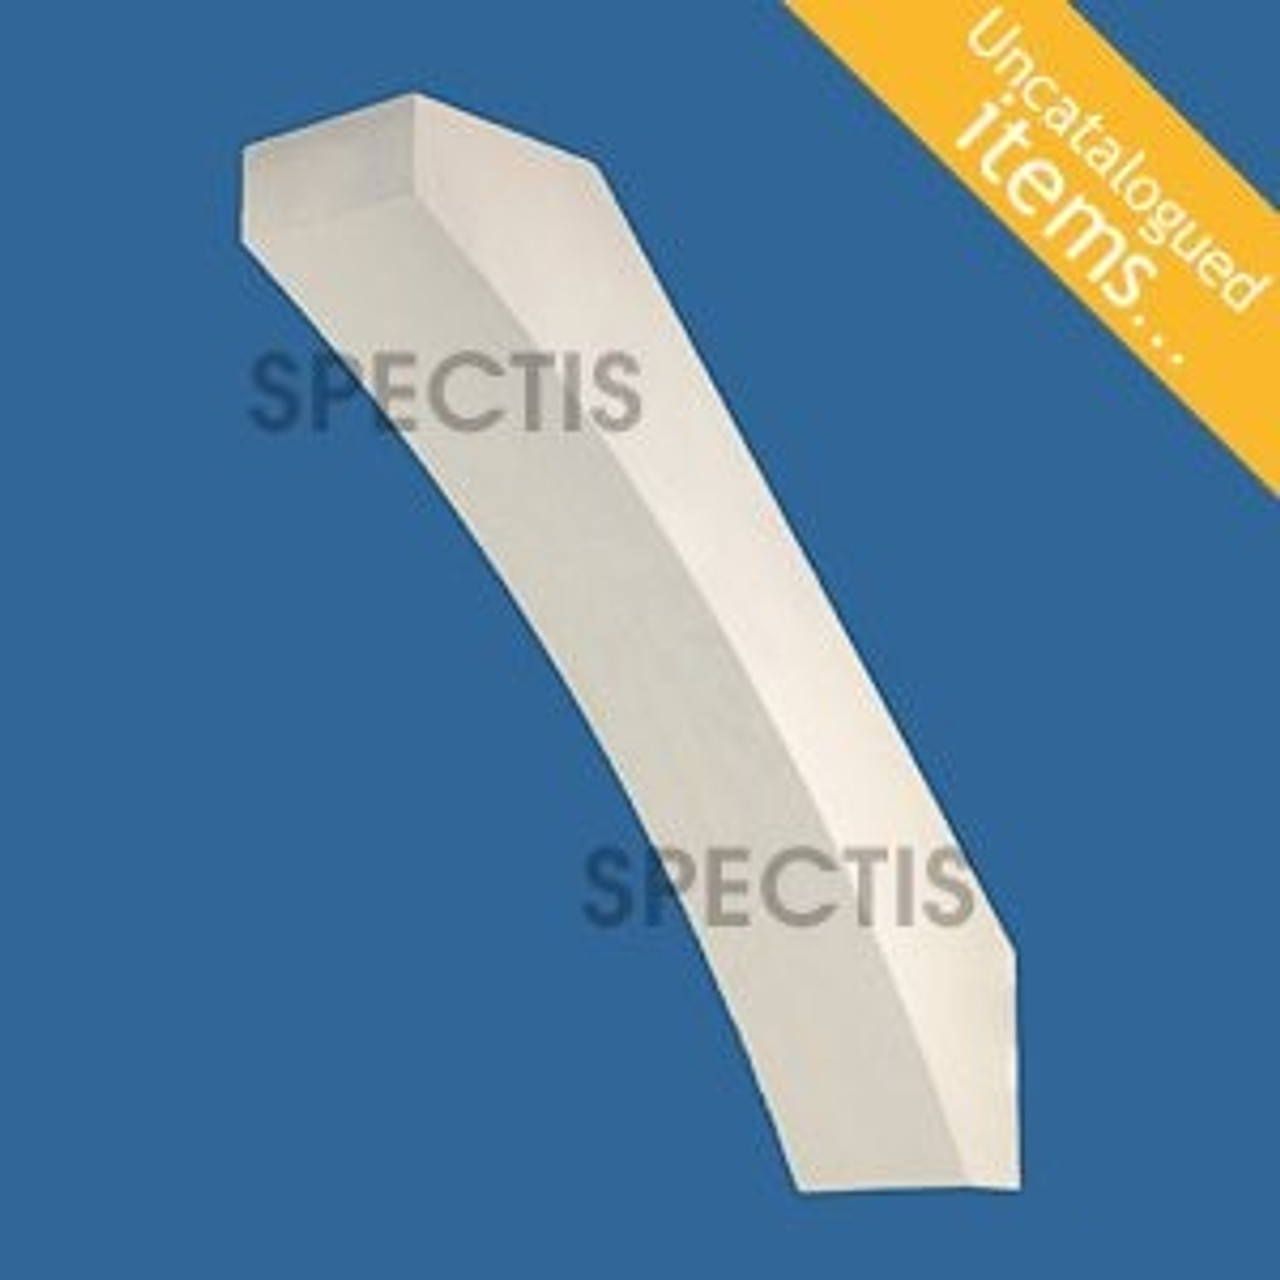 """BL3098 Spectis Eave Block or Bracket 7""""W x 32""""H x 36"""" Projection"""